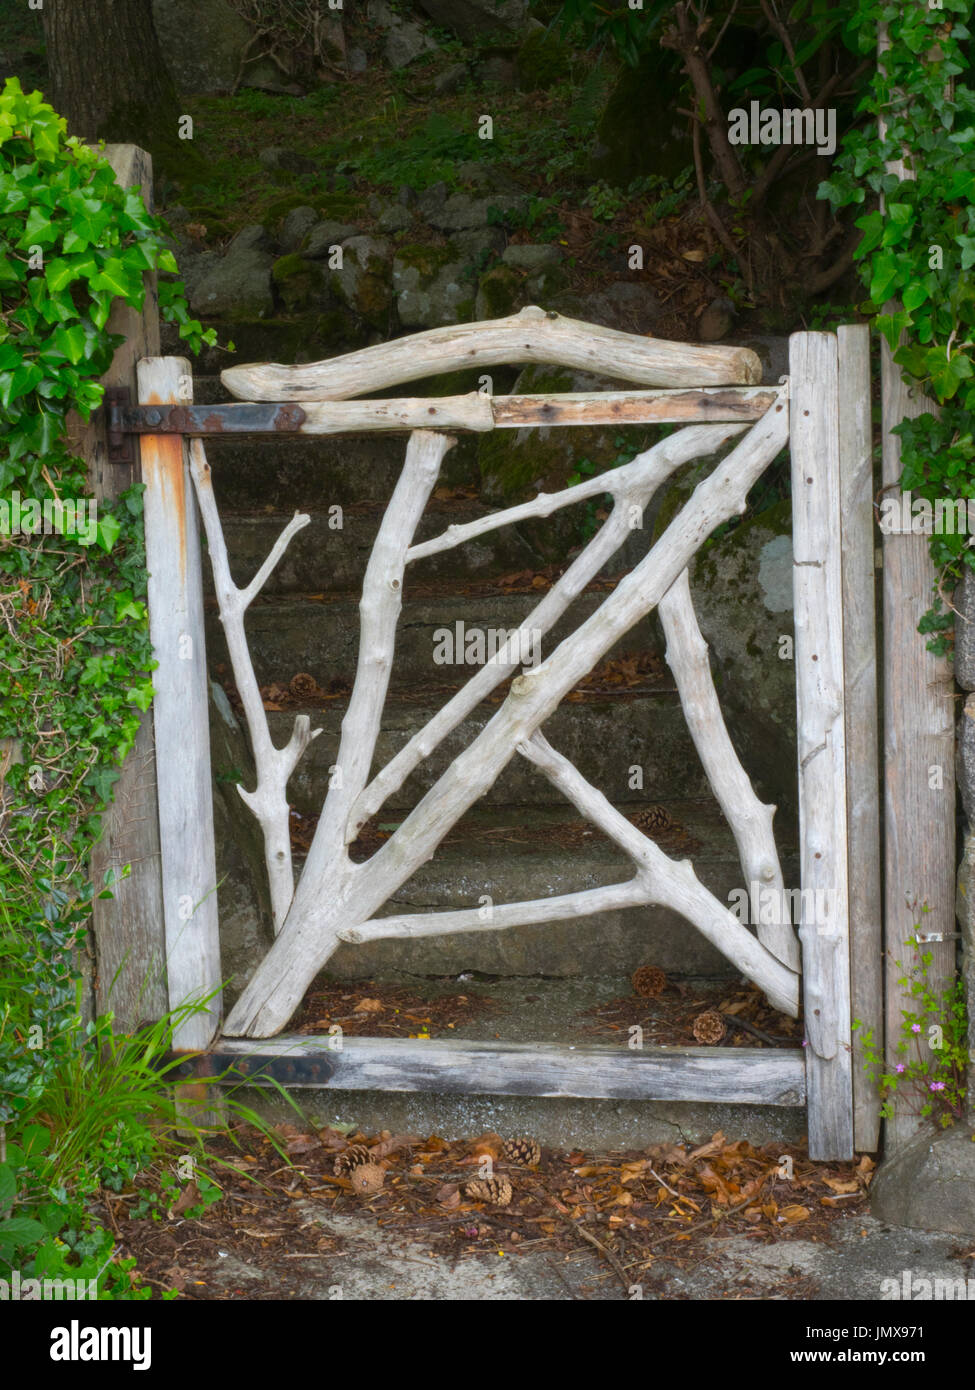 Rustic Garden Gate Made From Drift Wood In Coastal Garden   Stock Image